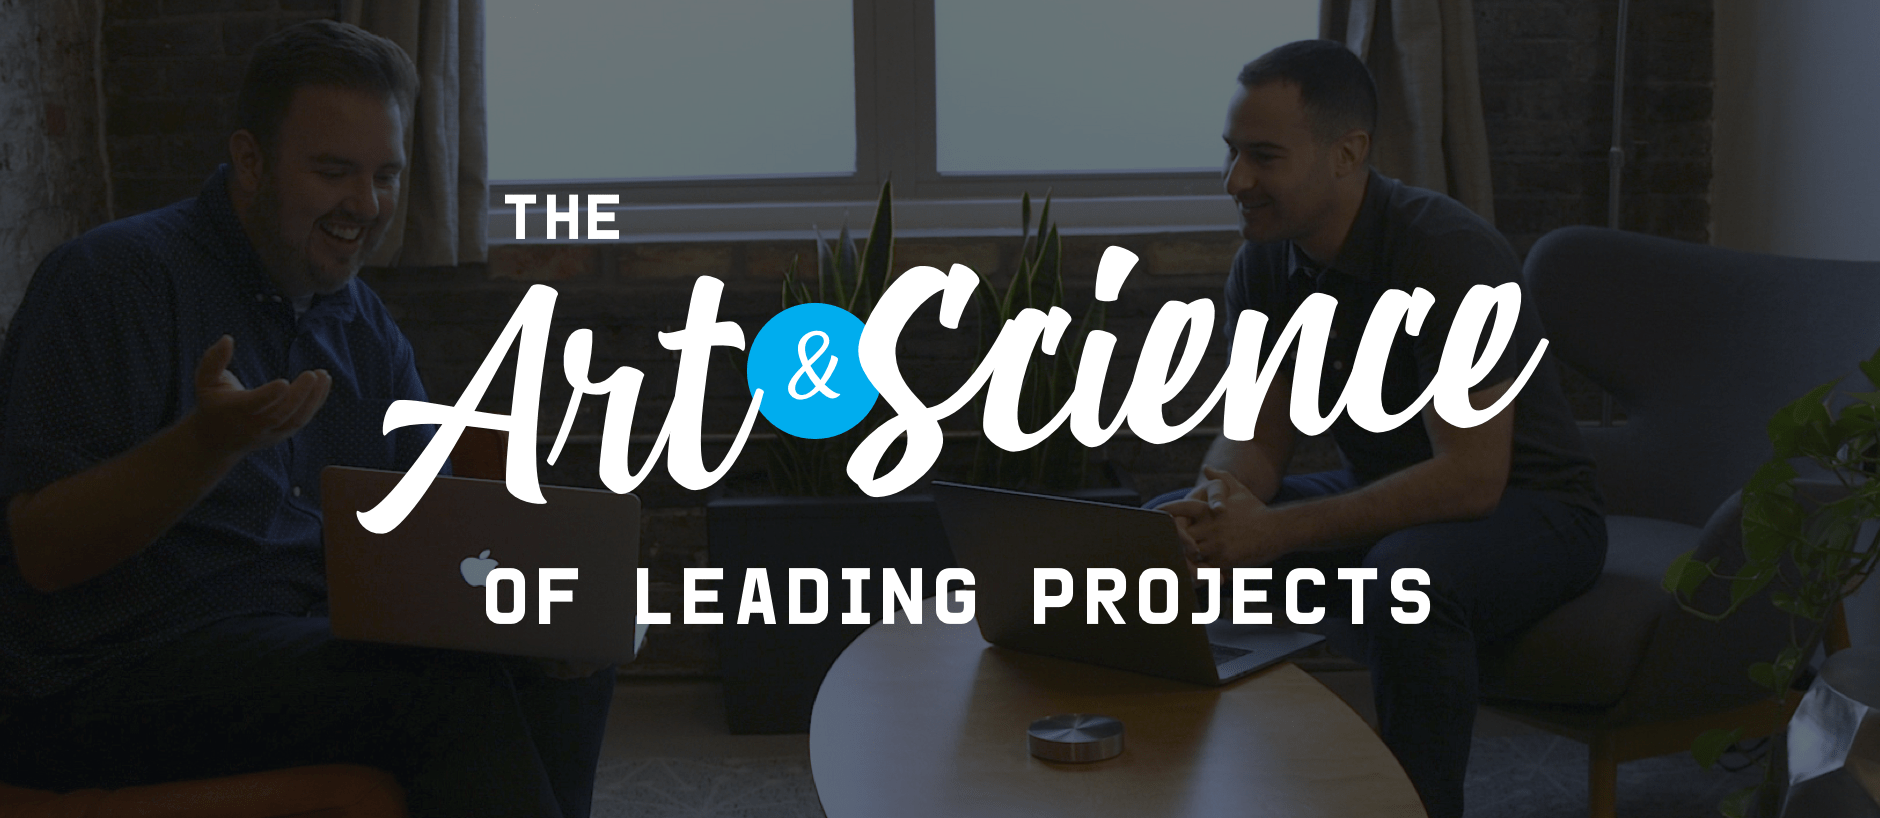 The Art & Science of Leading Projects free project management course